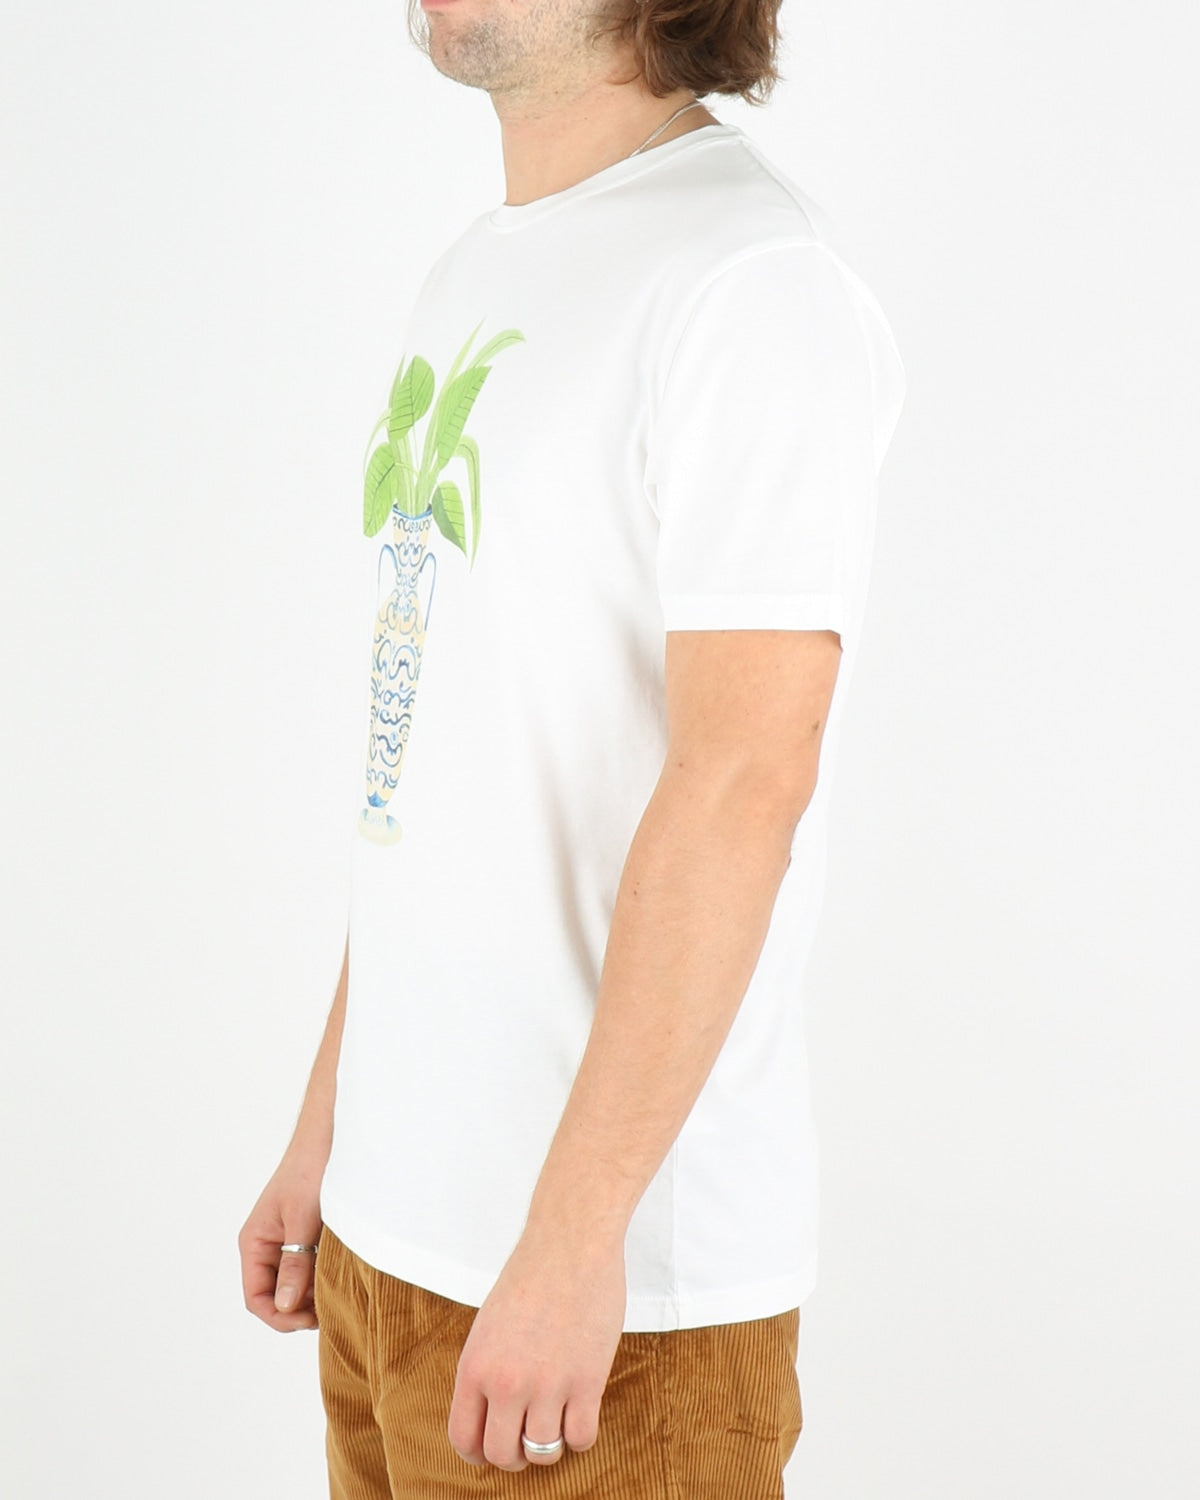 olow_porcelaine t-shirt_white_2_3